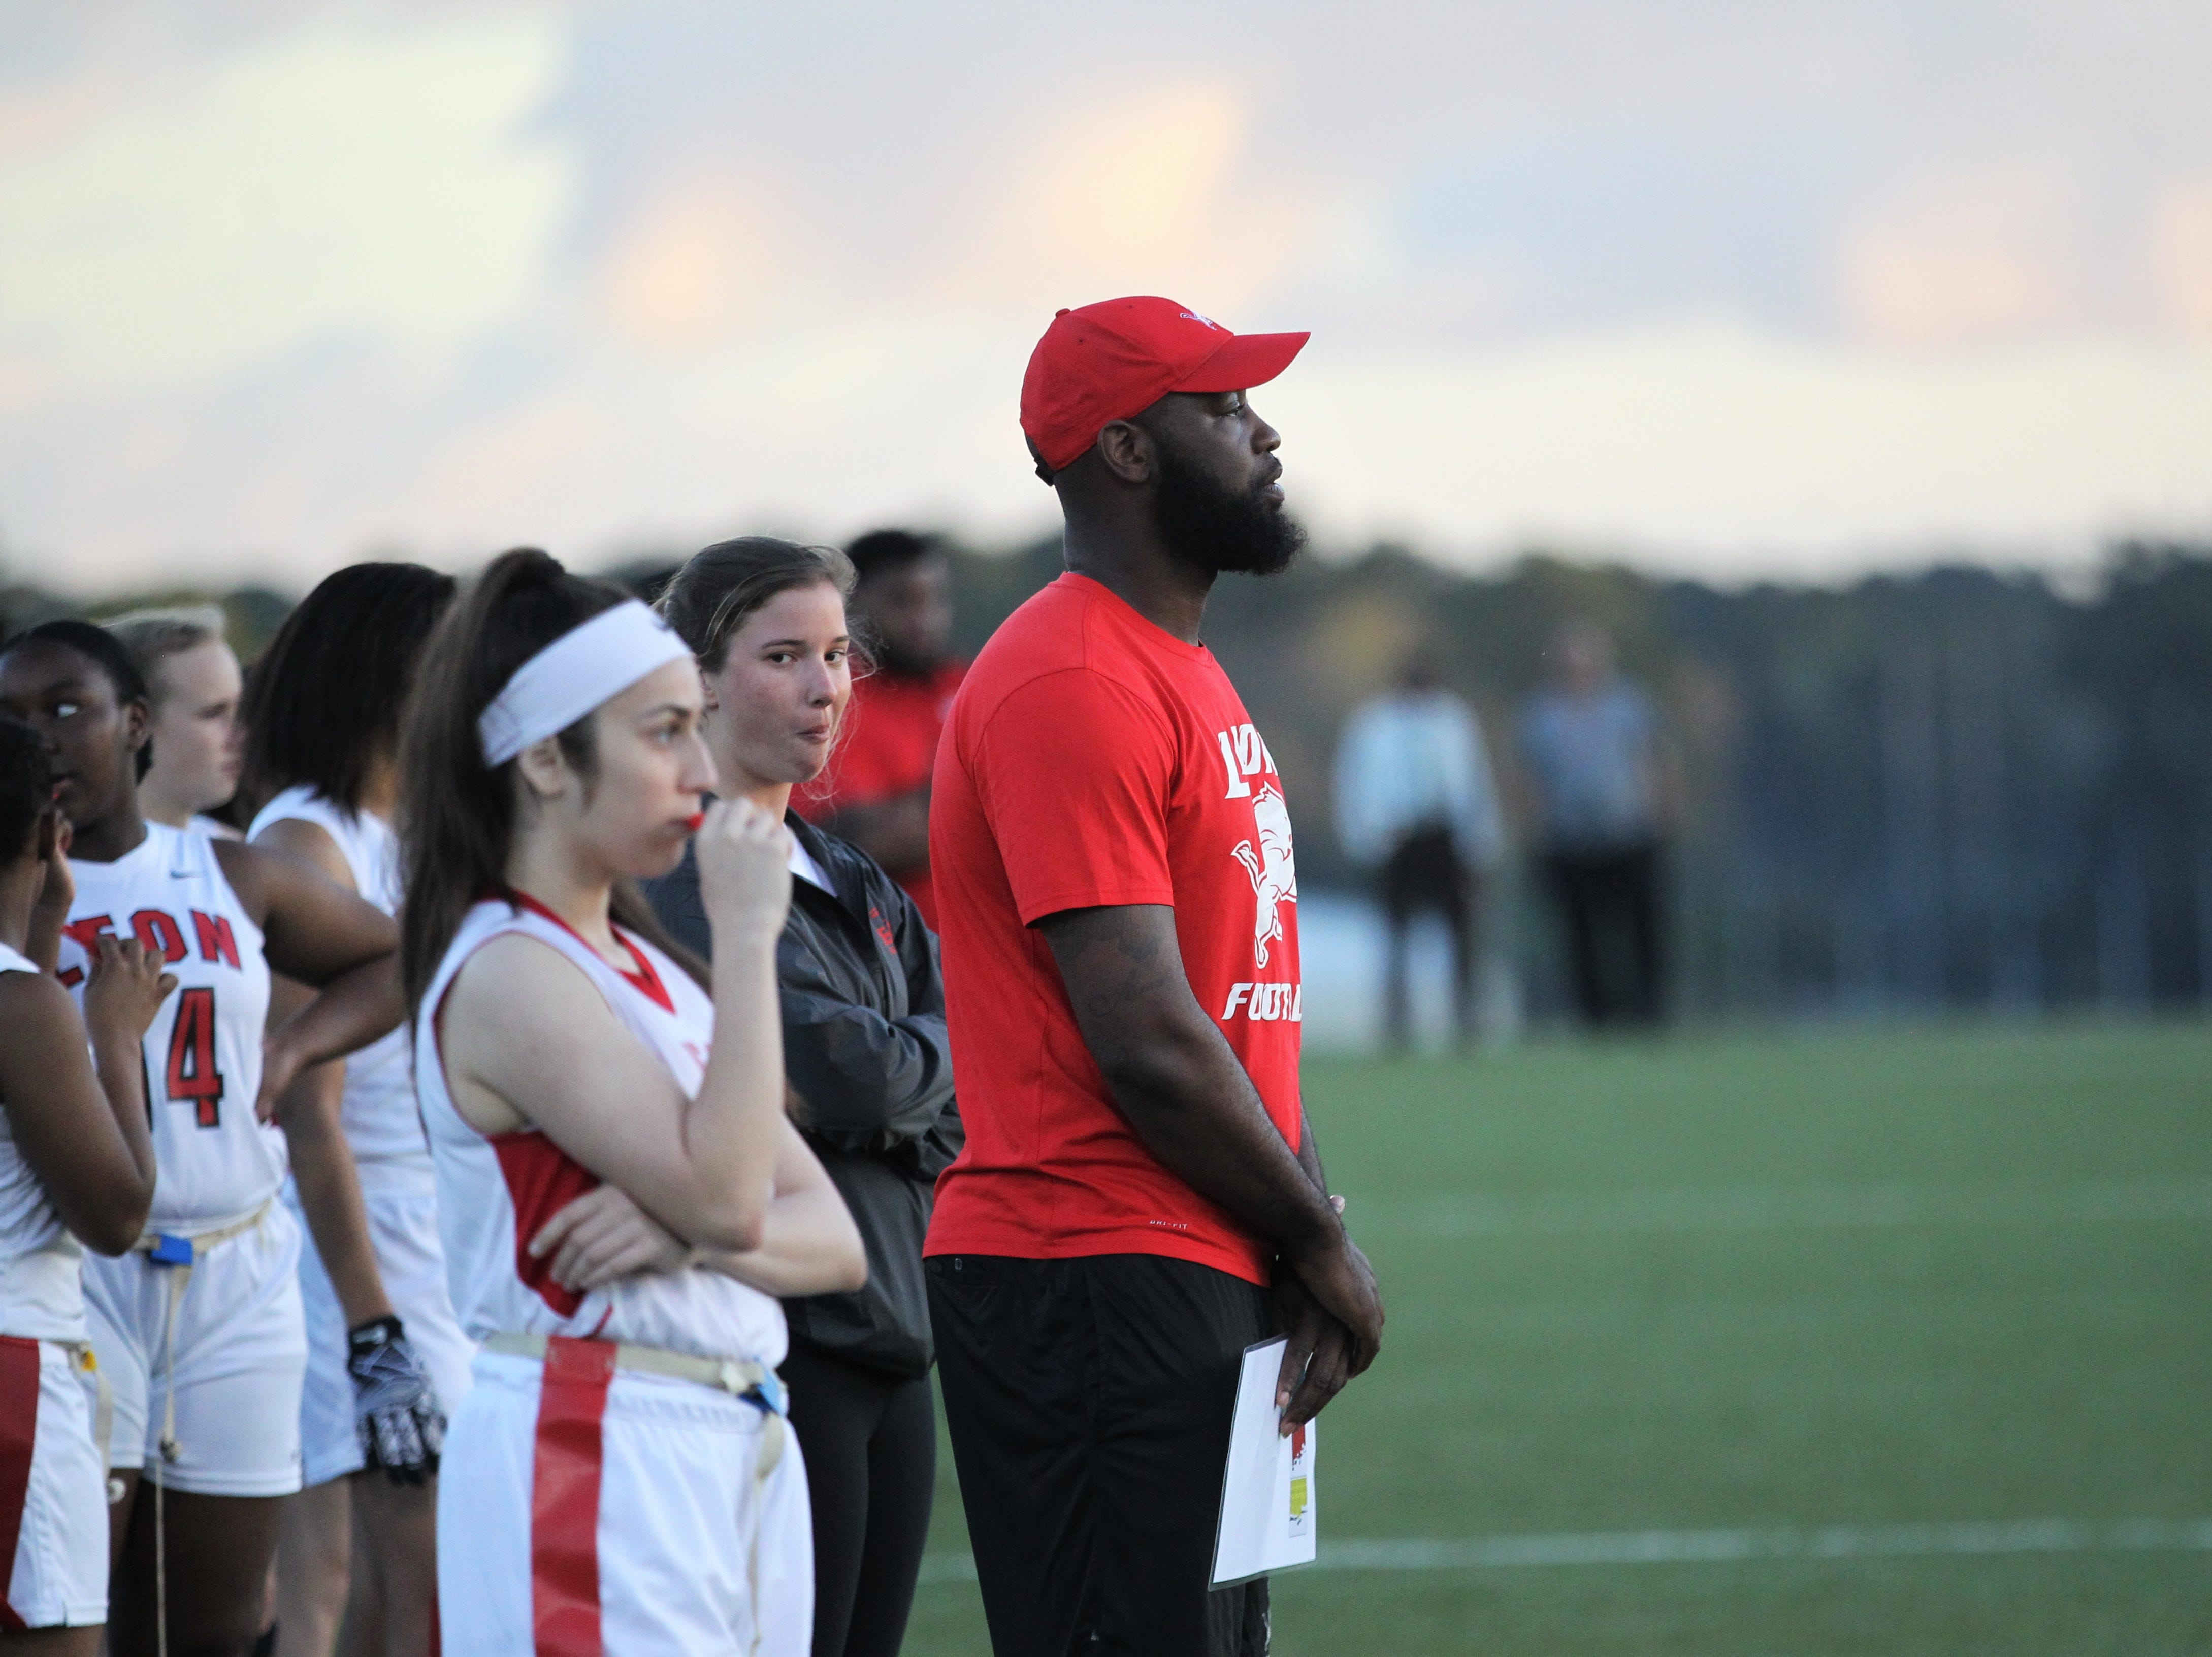 Leon flag football coach James Green watches as the Lions and Florida High play during the 2019 flag football preseason classic at Florida A&M's intramural turf fields on Feb. 27, 2019.